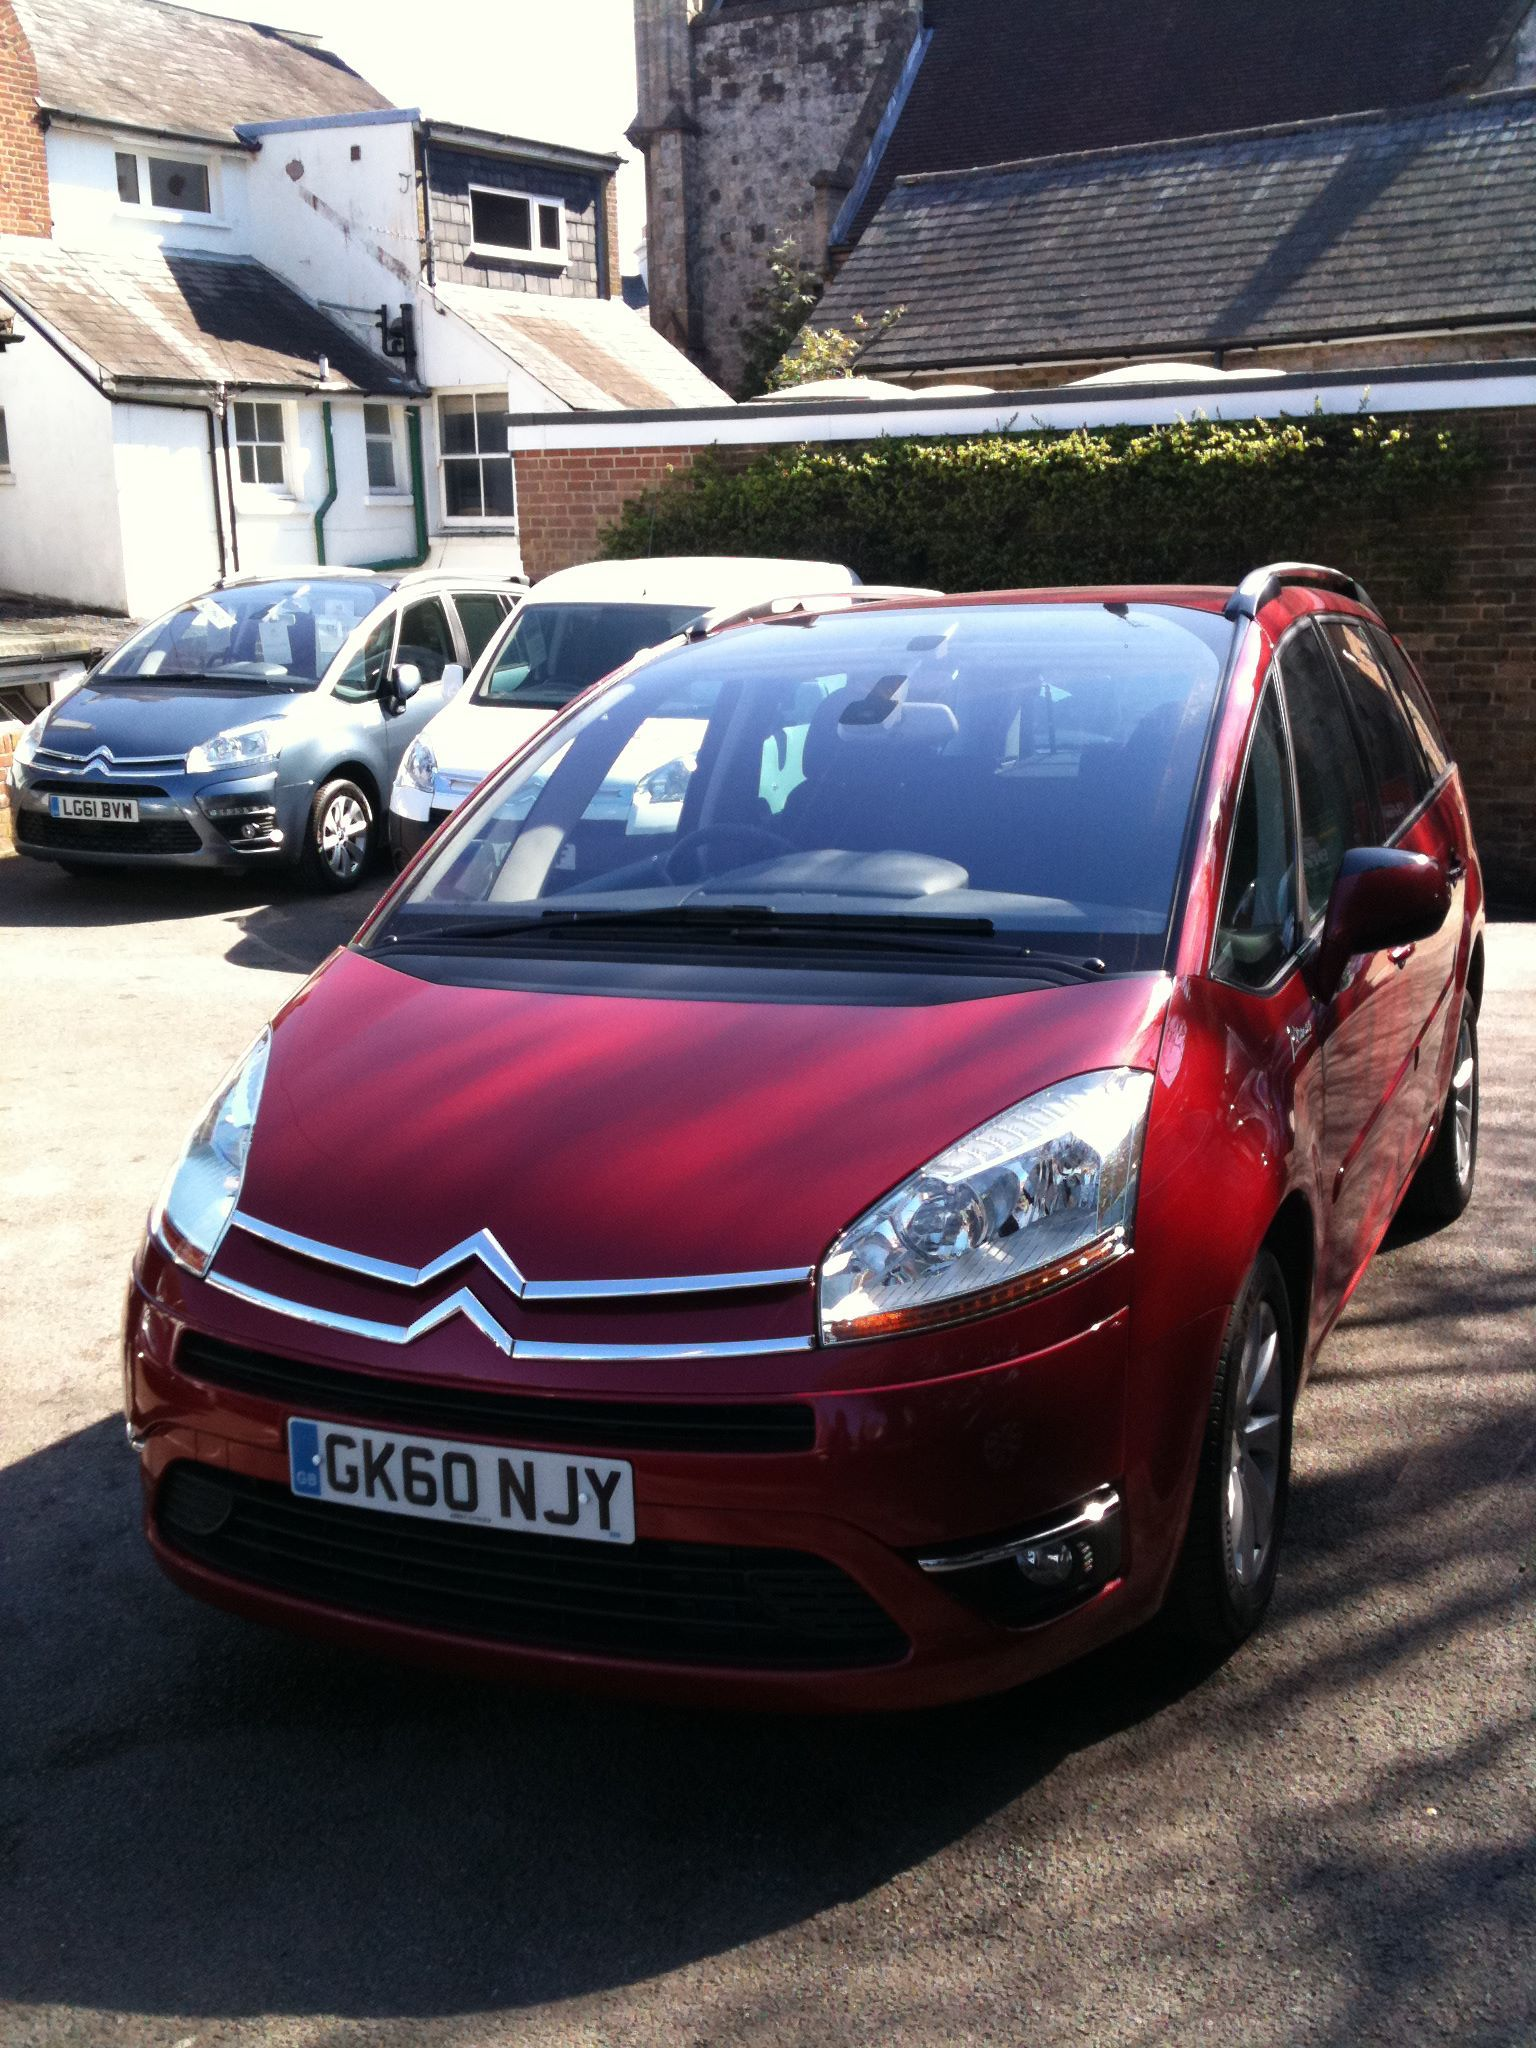 My mums car was stolen yesterday this is what it looks